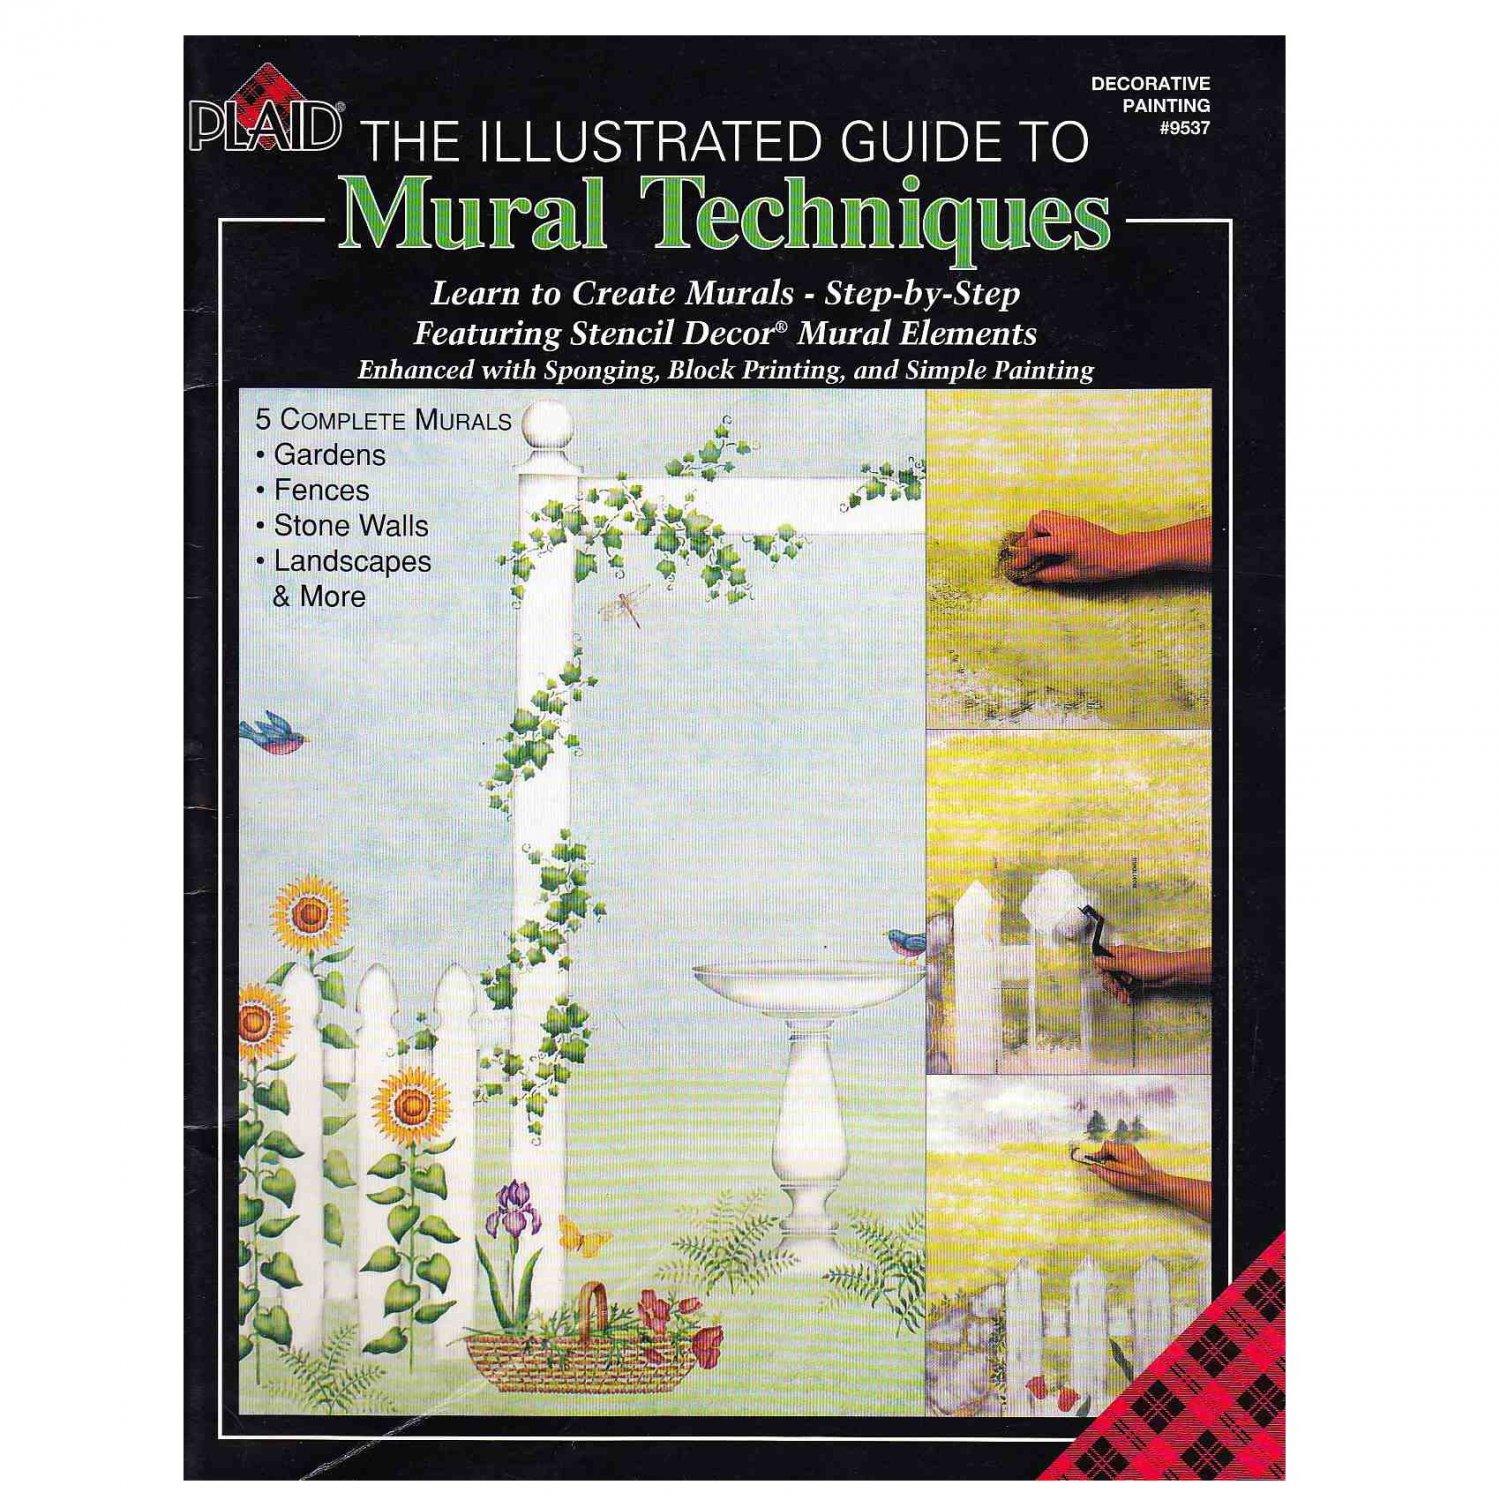 THE ILLUSTRATED GUIDE TO MURAL TECHNIQUES BOOK